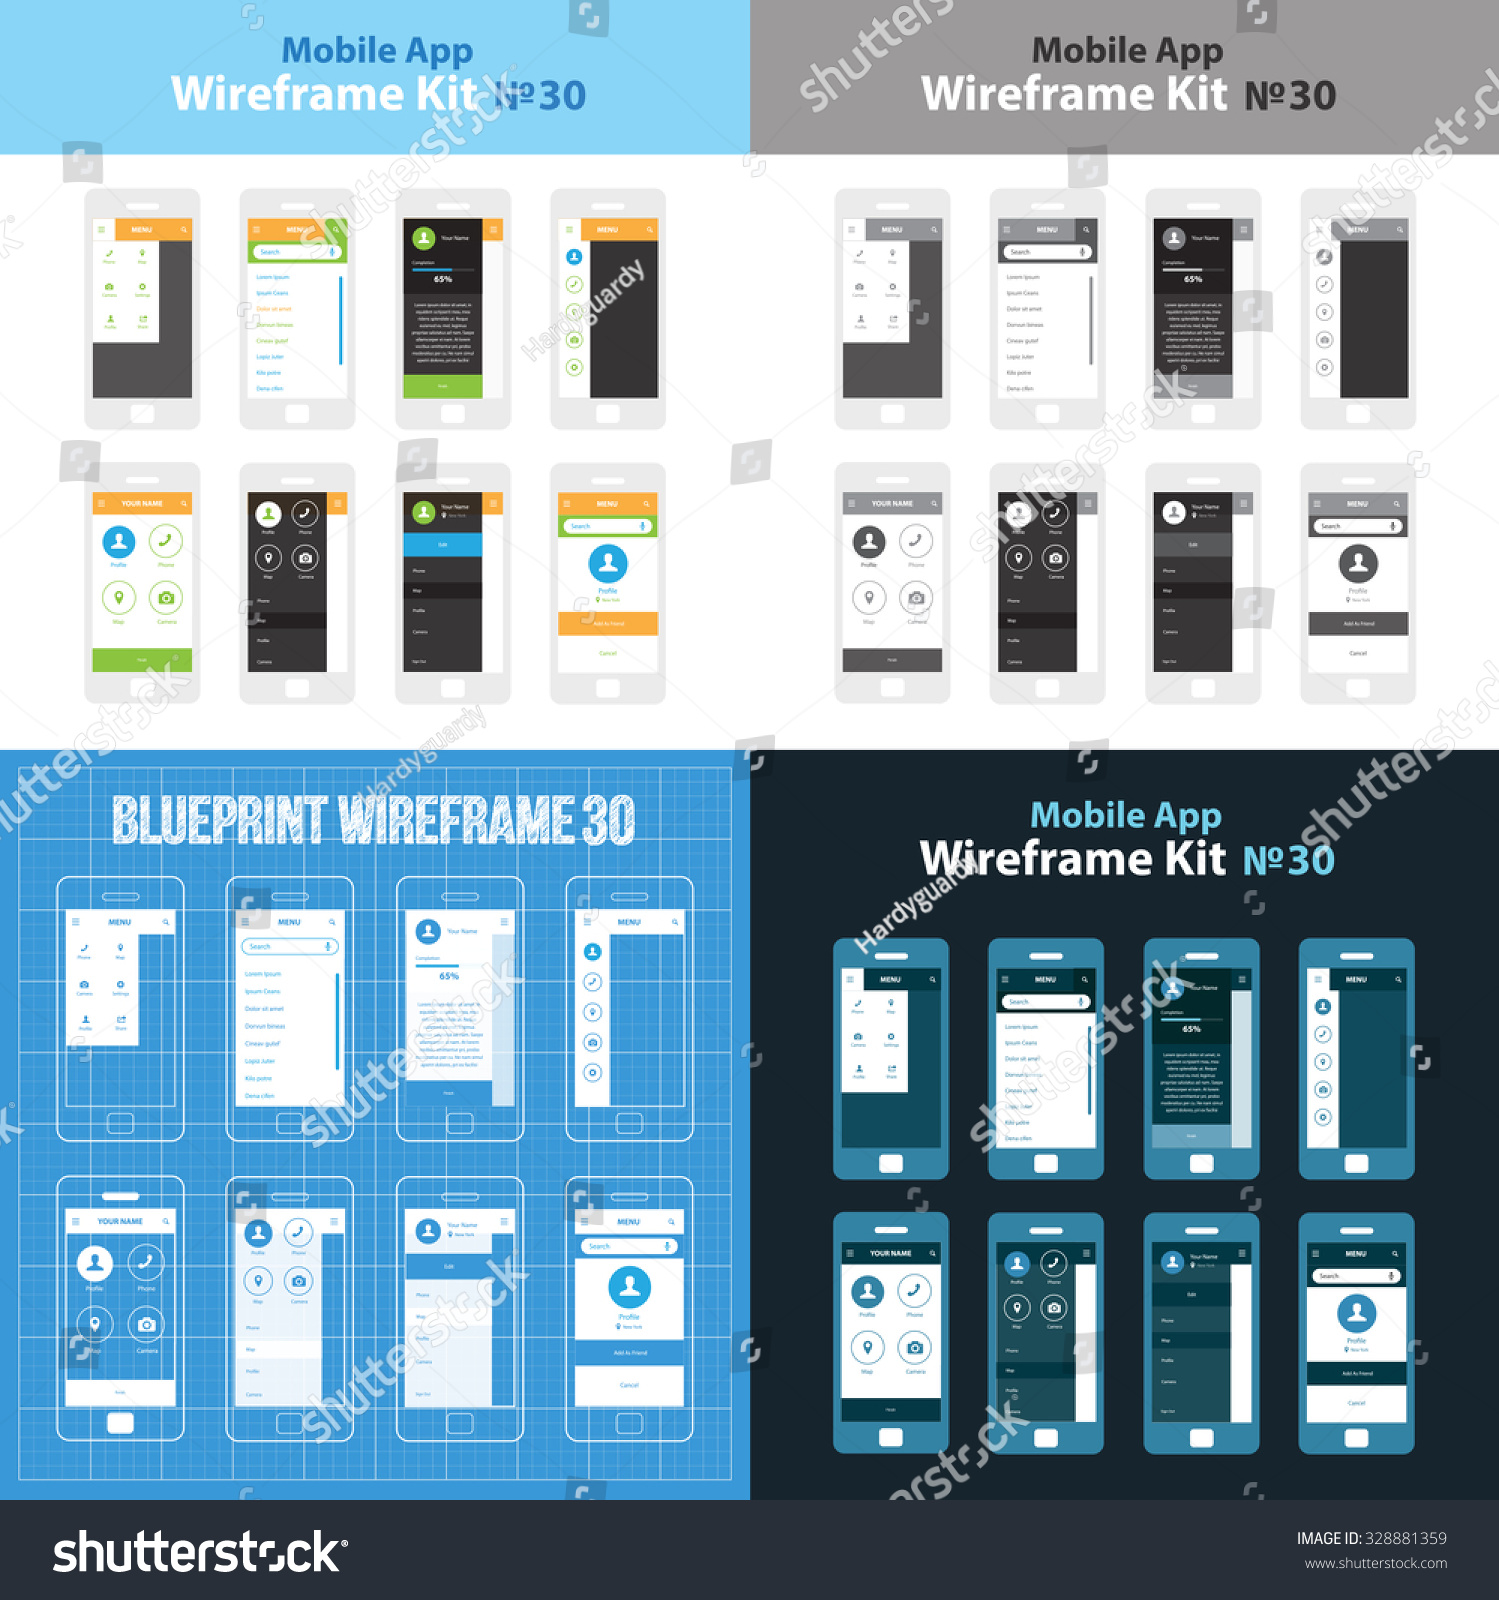 Mobile WIreframe App UI Kit 30 … Stock Photo 328881359 - Avopix com